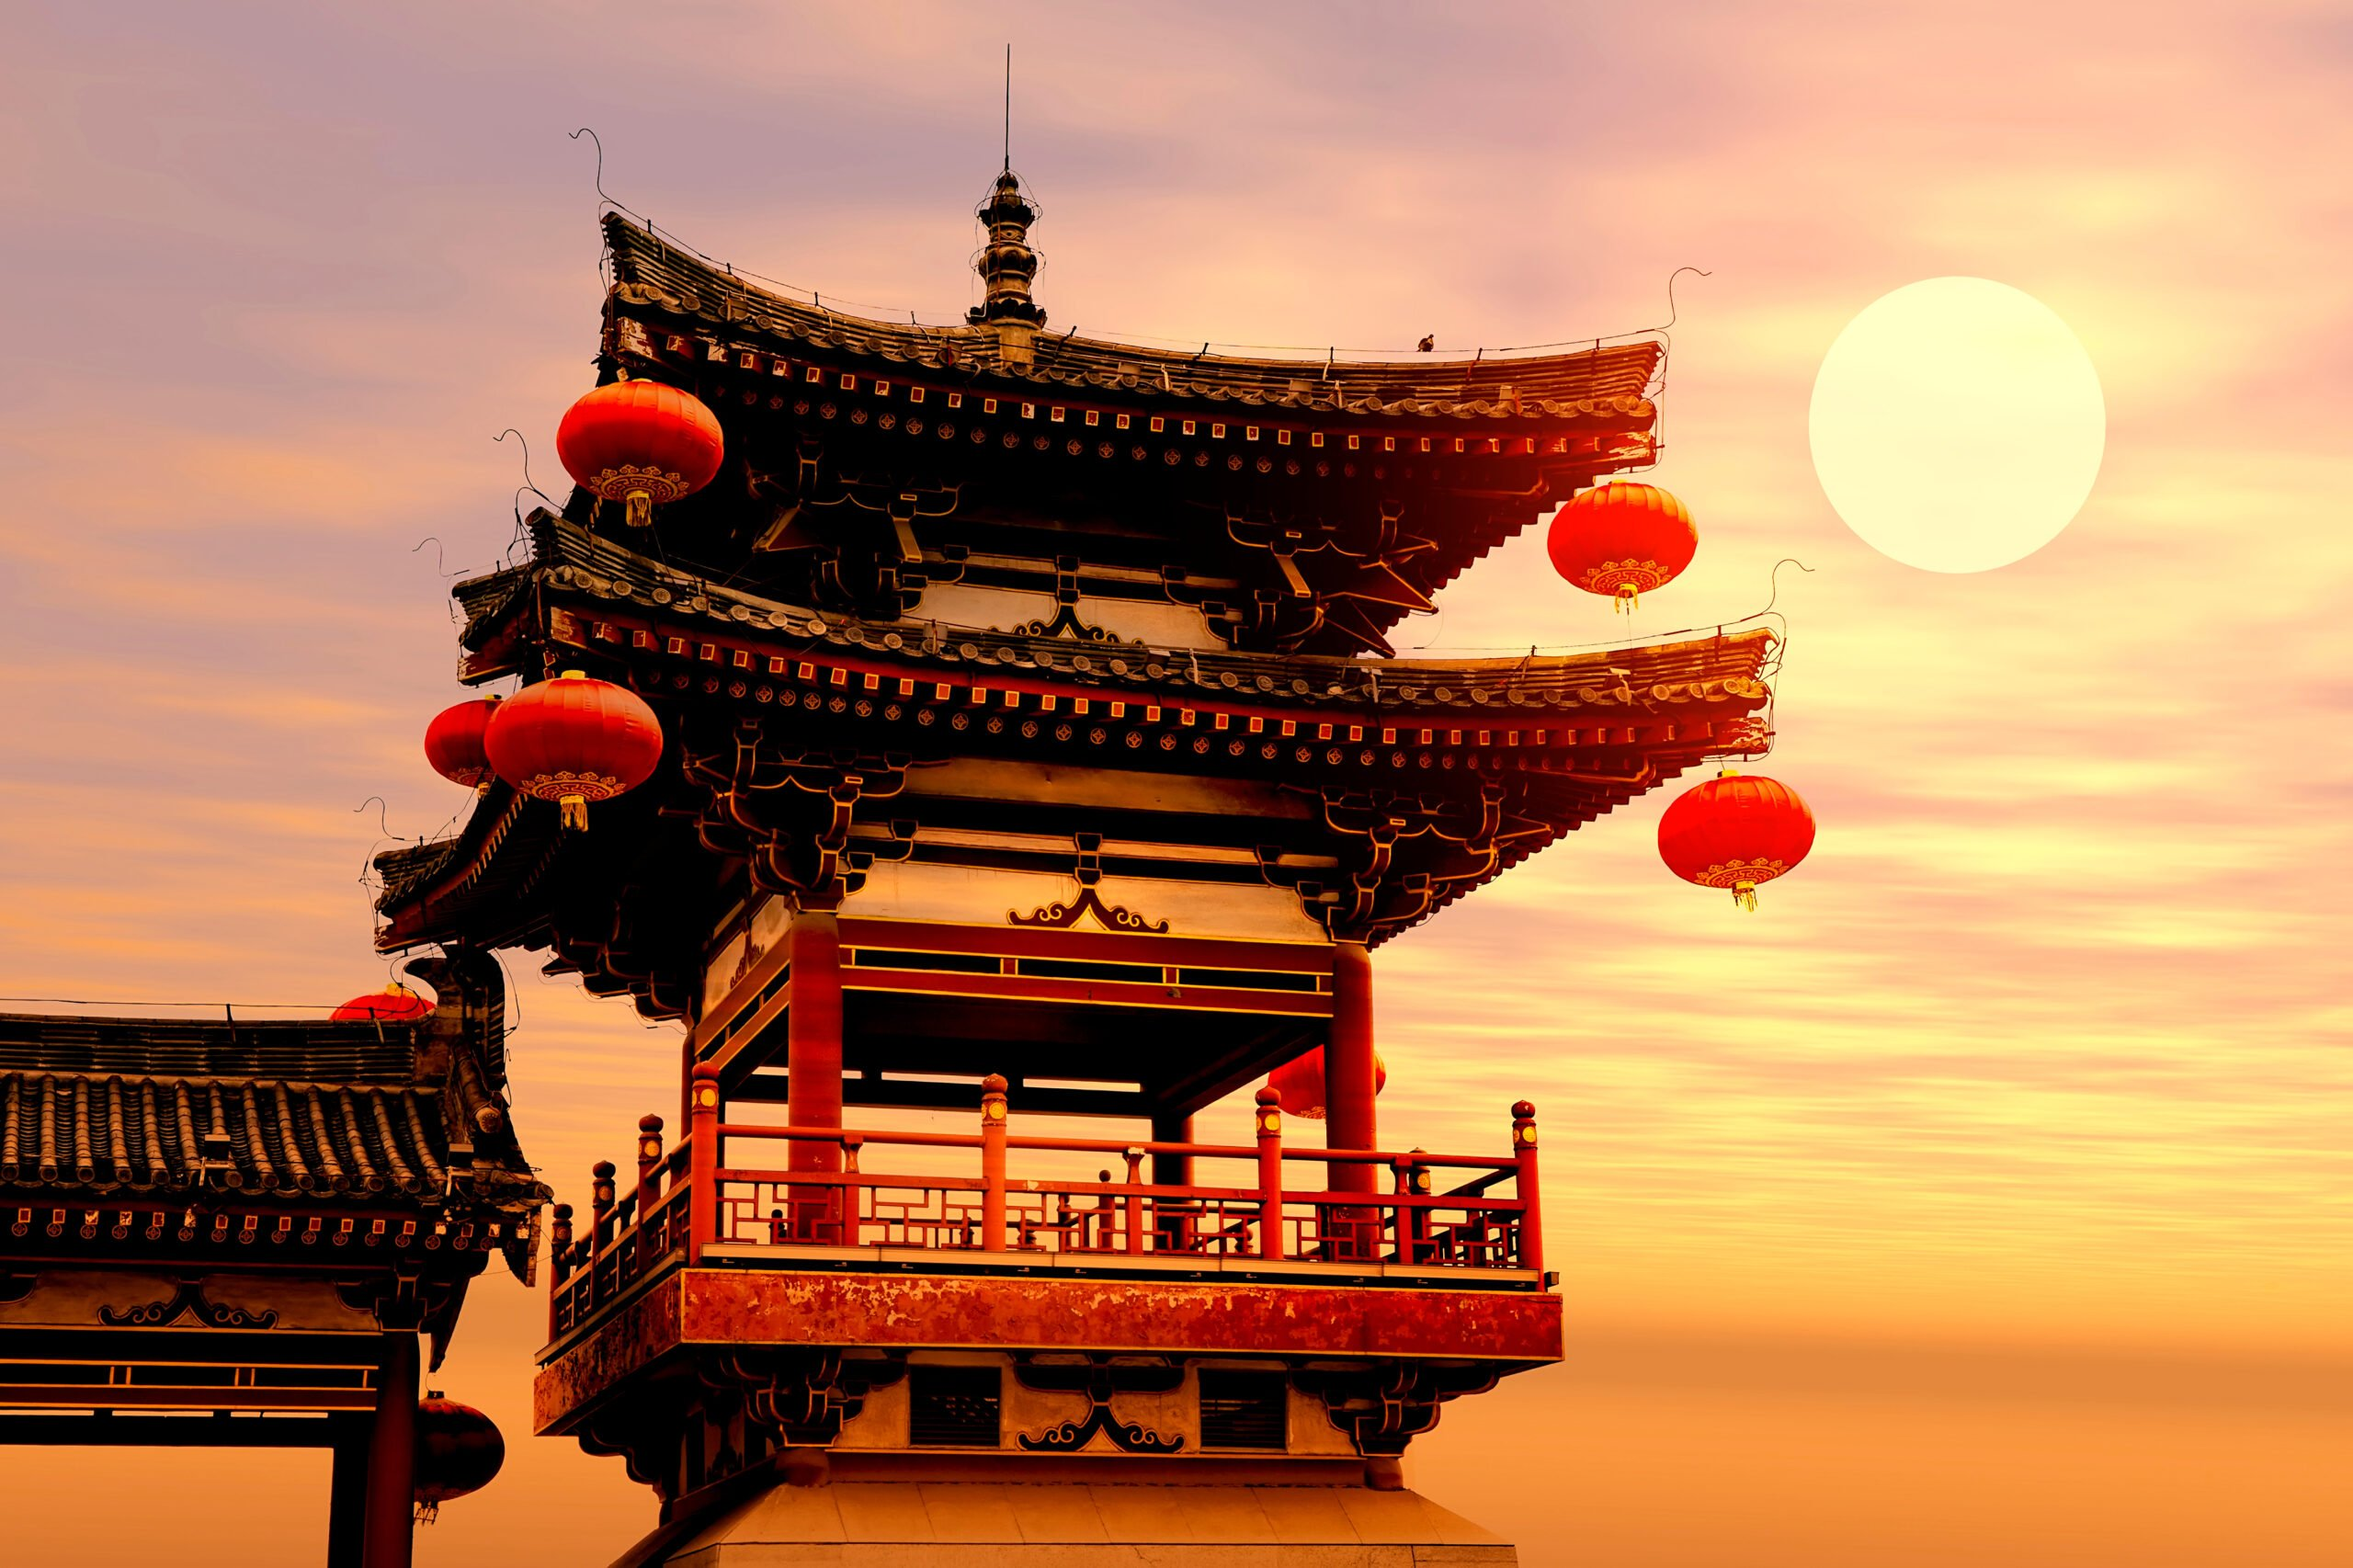 Discover The Amazing China In Our China Private Impression 14 Day Package